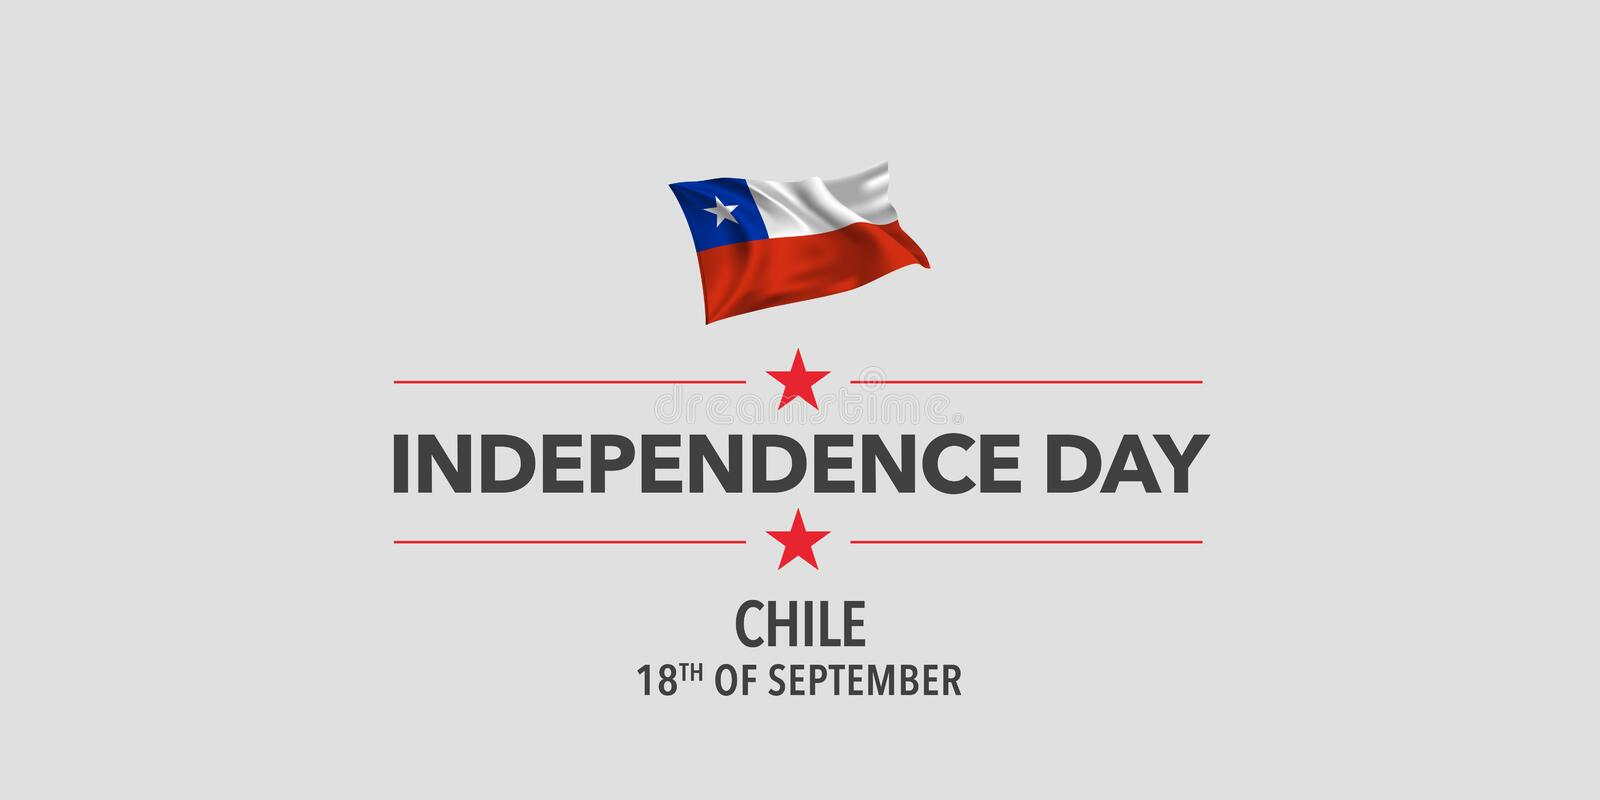 Chile Independence day greeting card, banner, vector illustration royalty free stock image